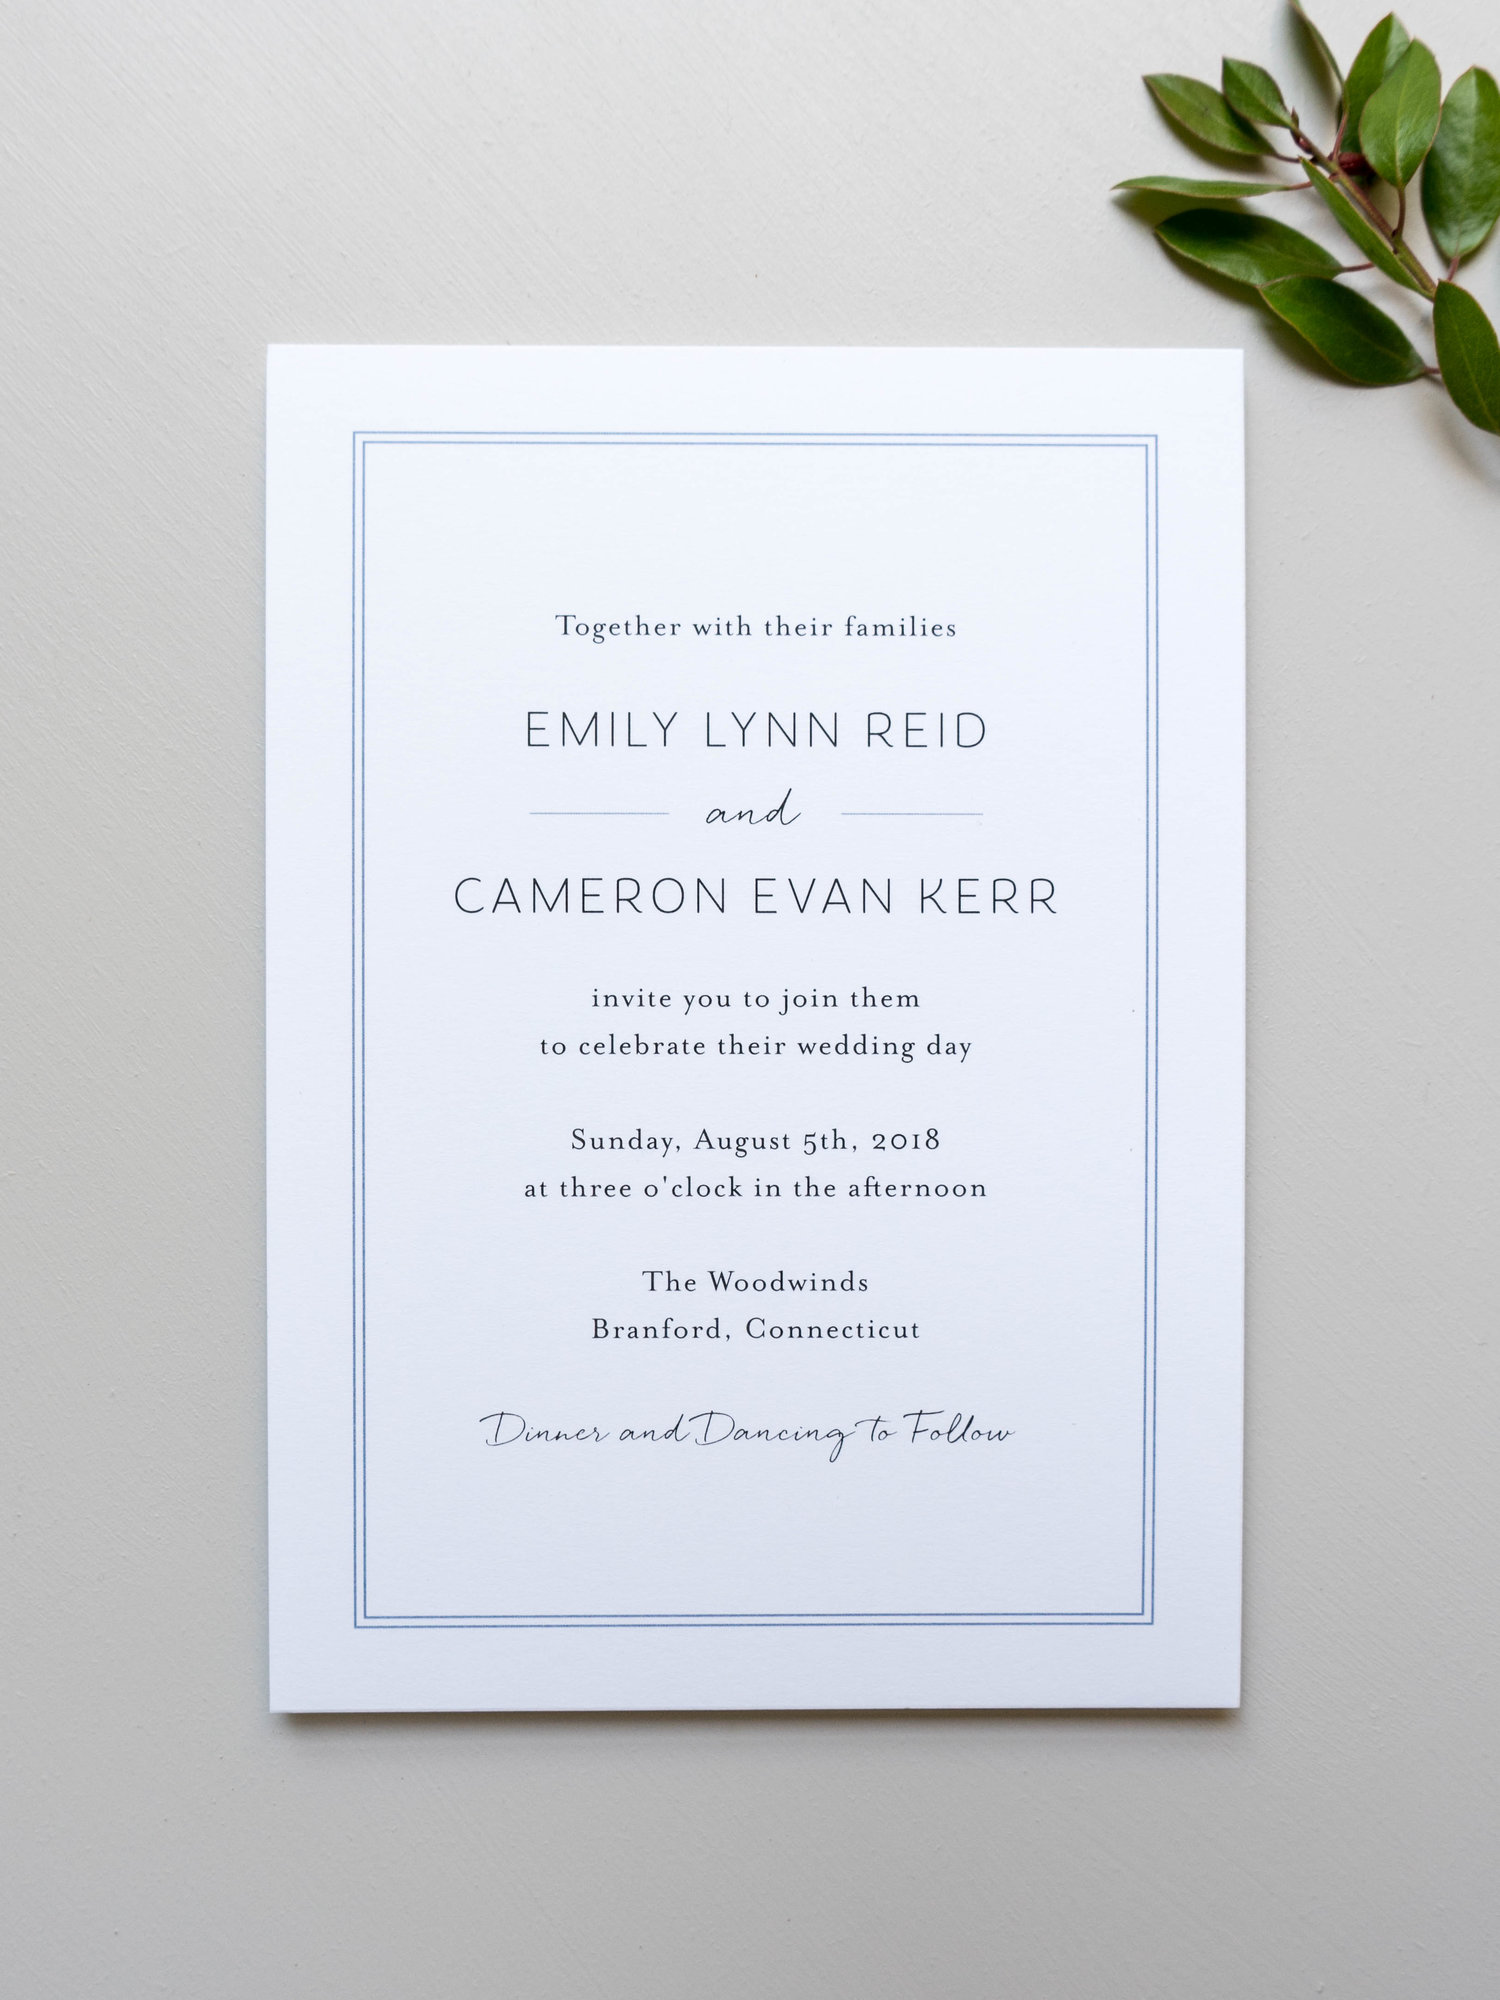 Sunflower Wedding Invitation Design Launch — Just Jurf Designs